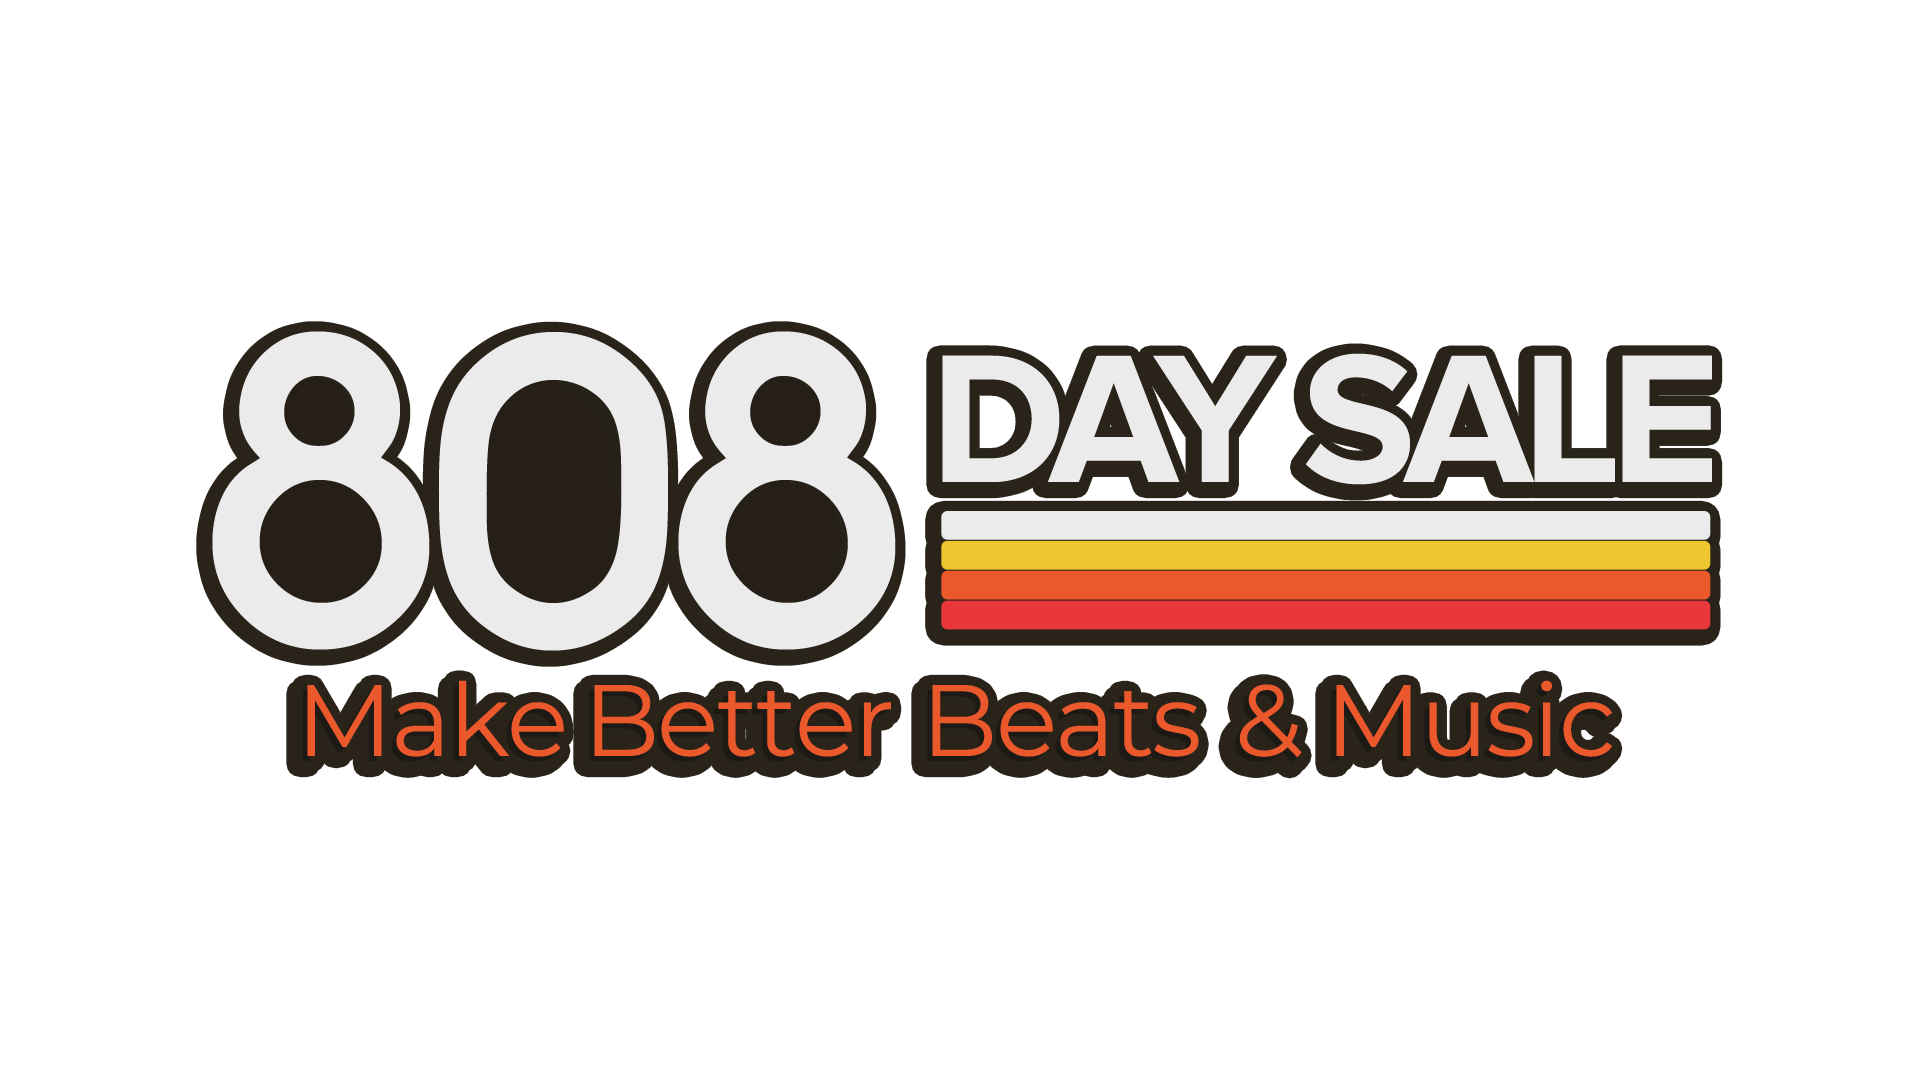 808 Day Sale